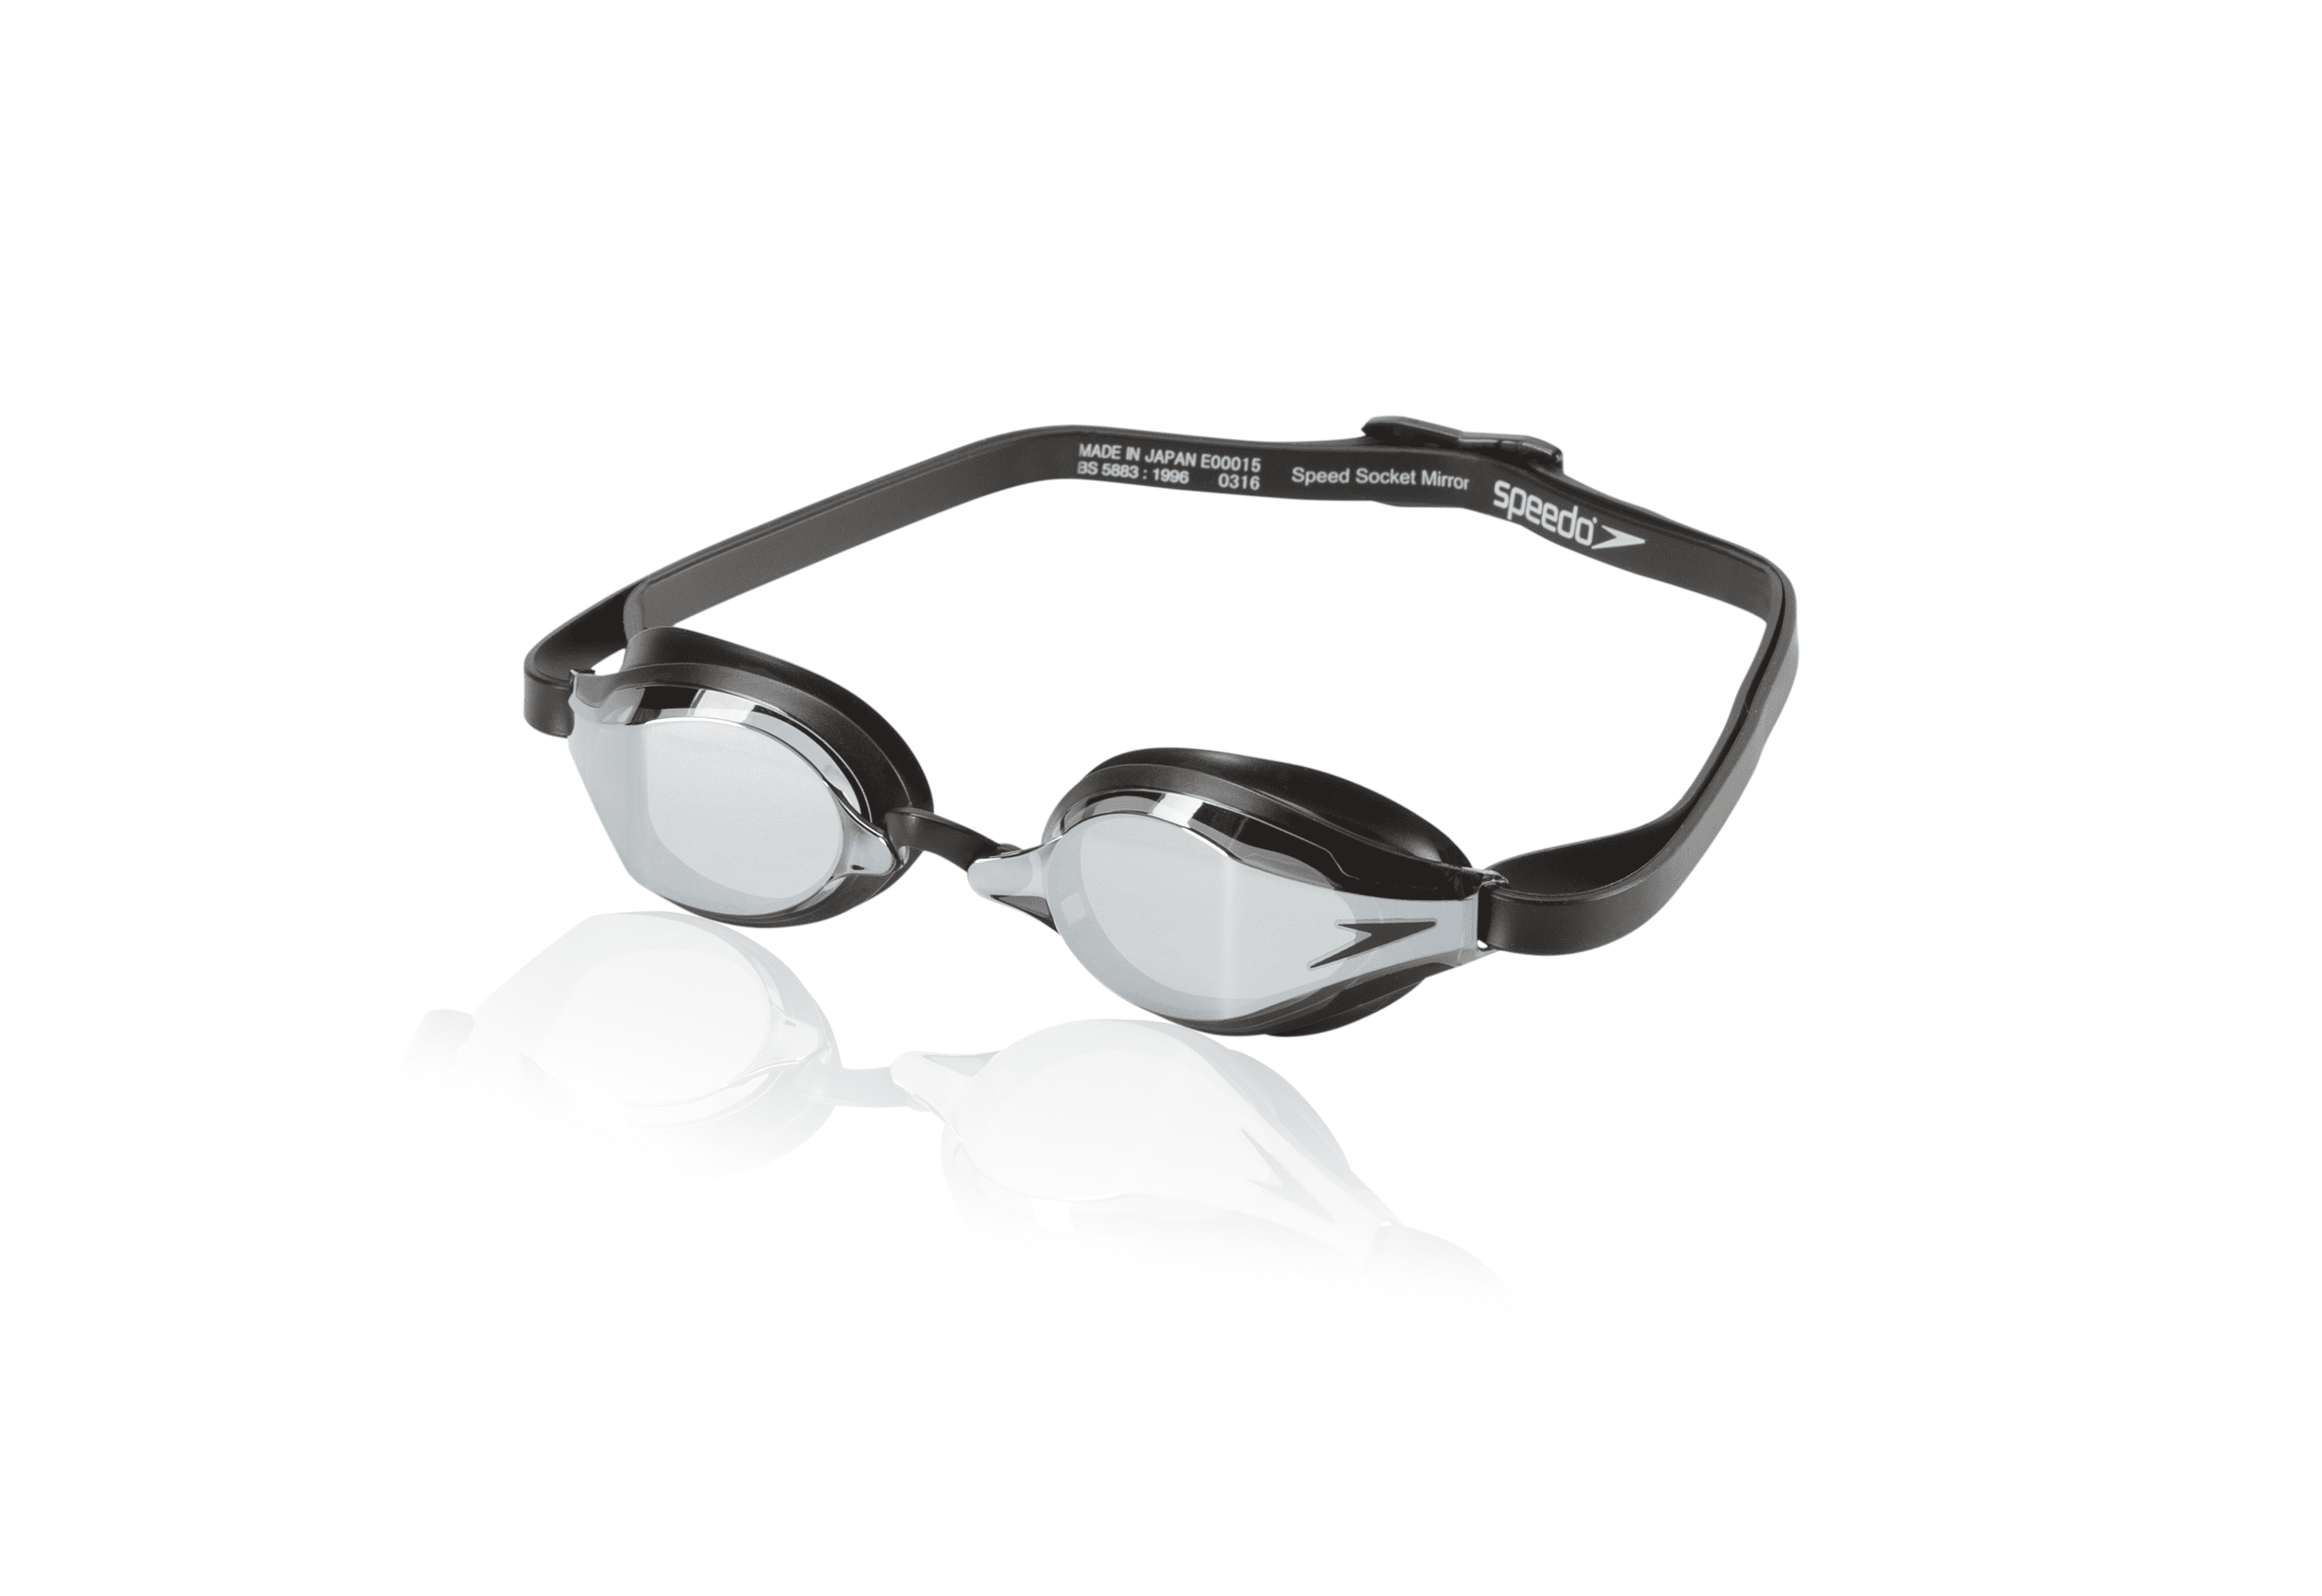 Speedo Speed Socket Mirrored-Black $18.99